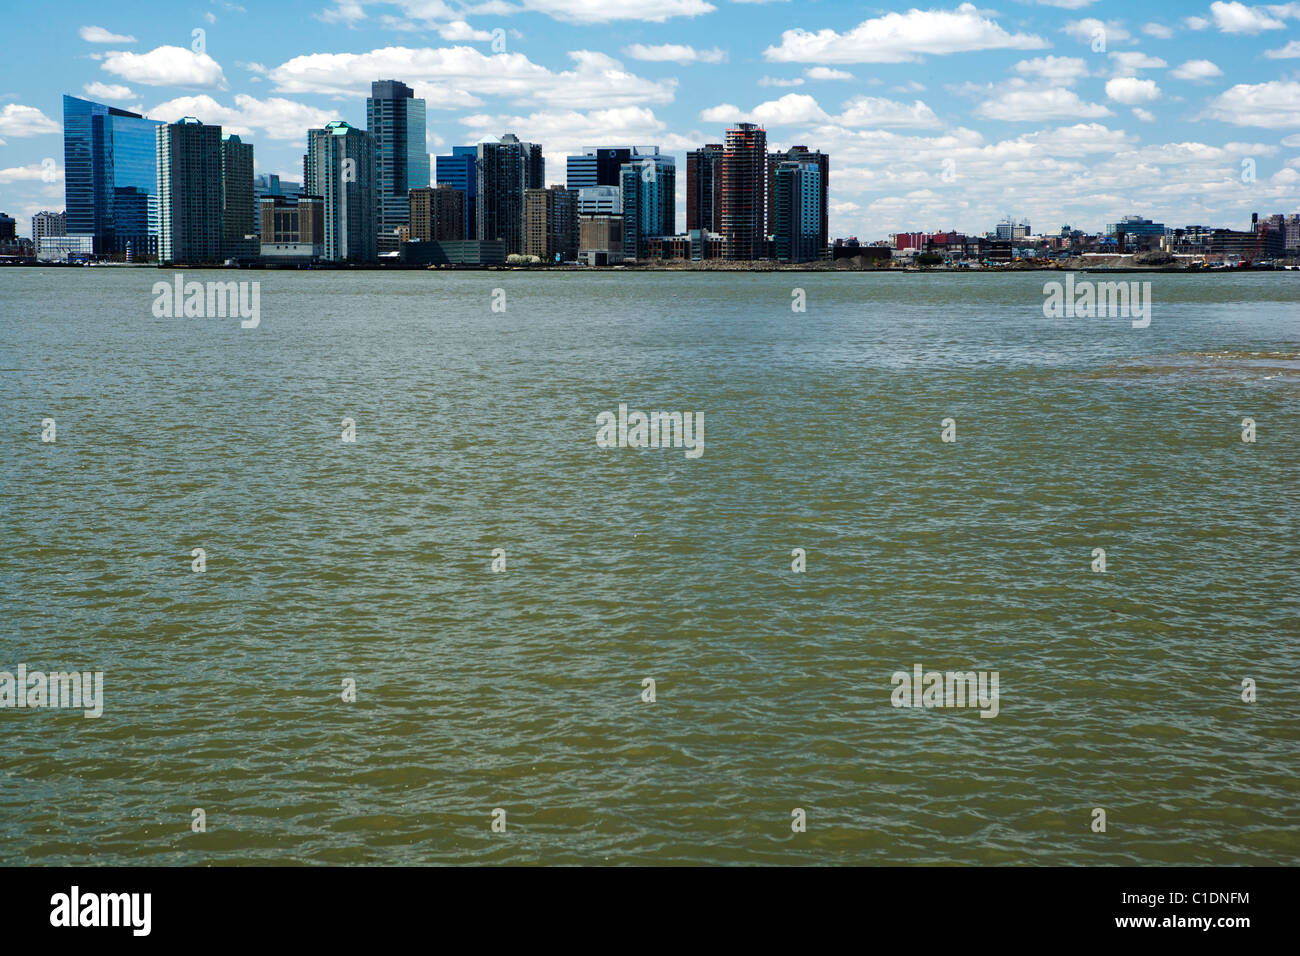 The New York Skyline and the Hudson River in the foreground - Stock Image